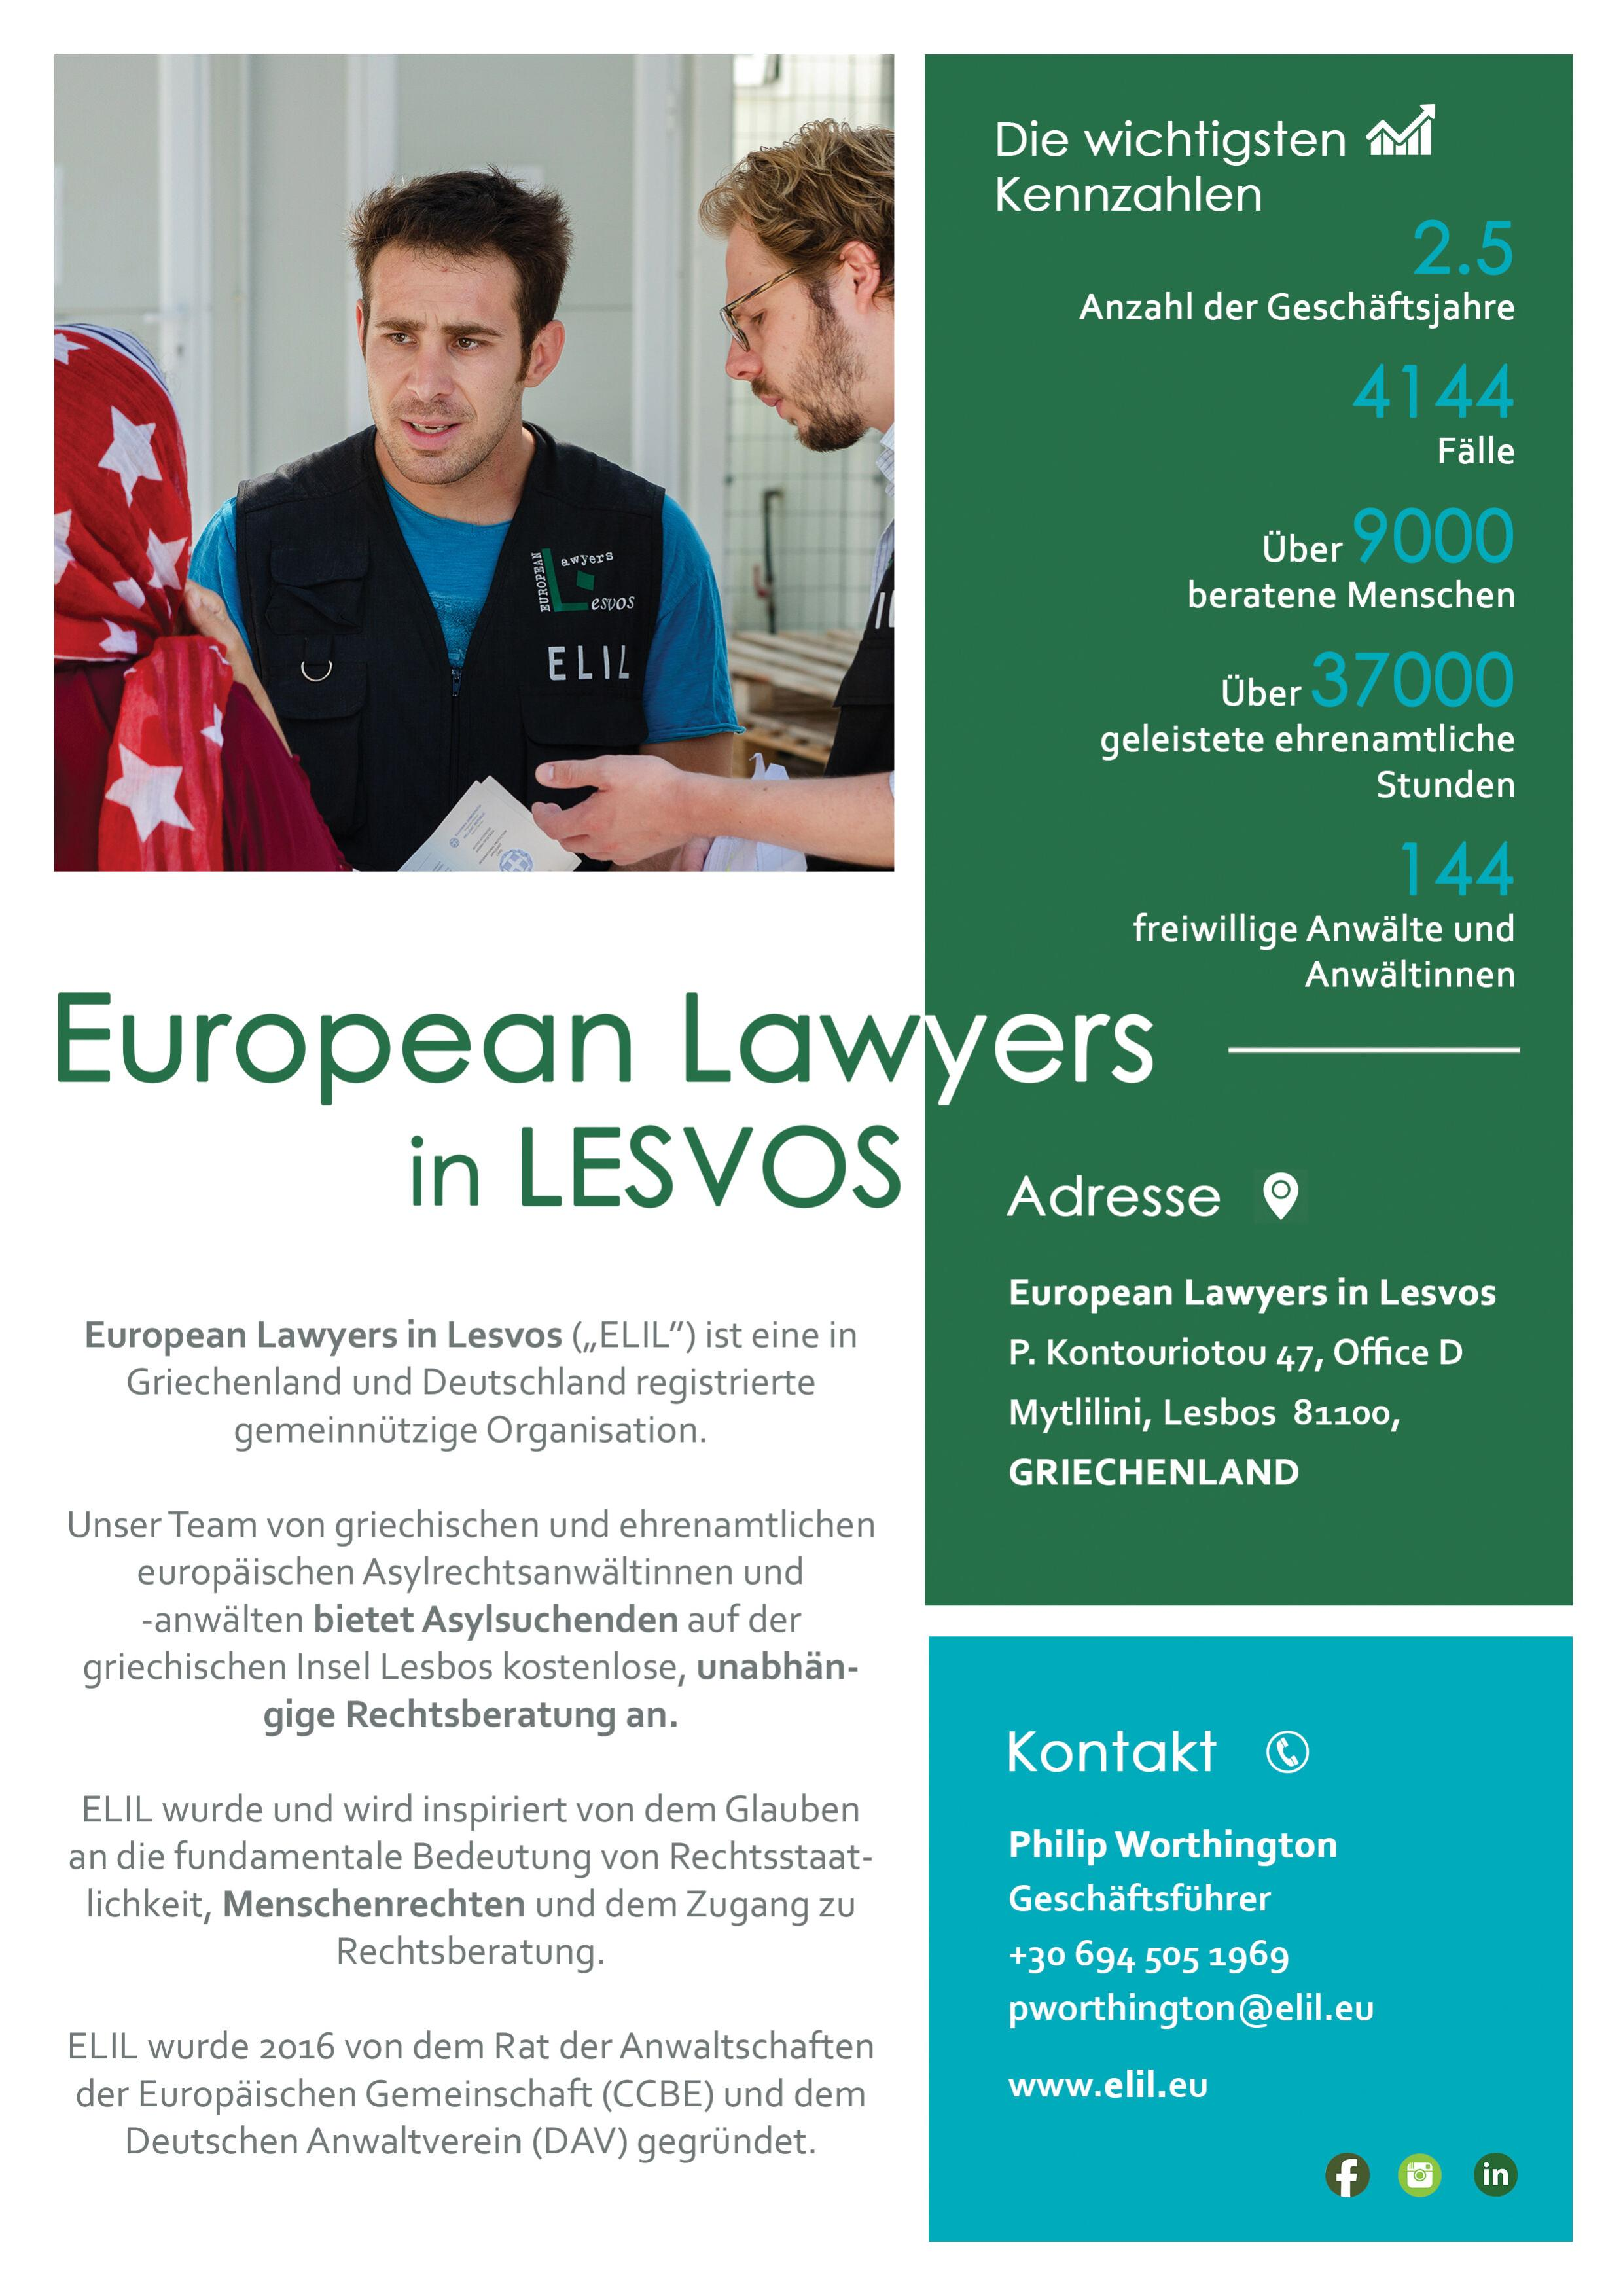 European Lawyers in Lesvos - Infographic_DE-page-001.jpg